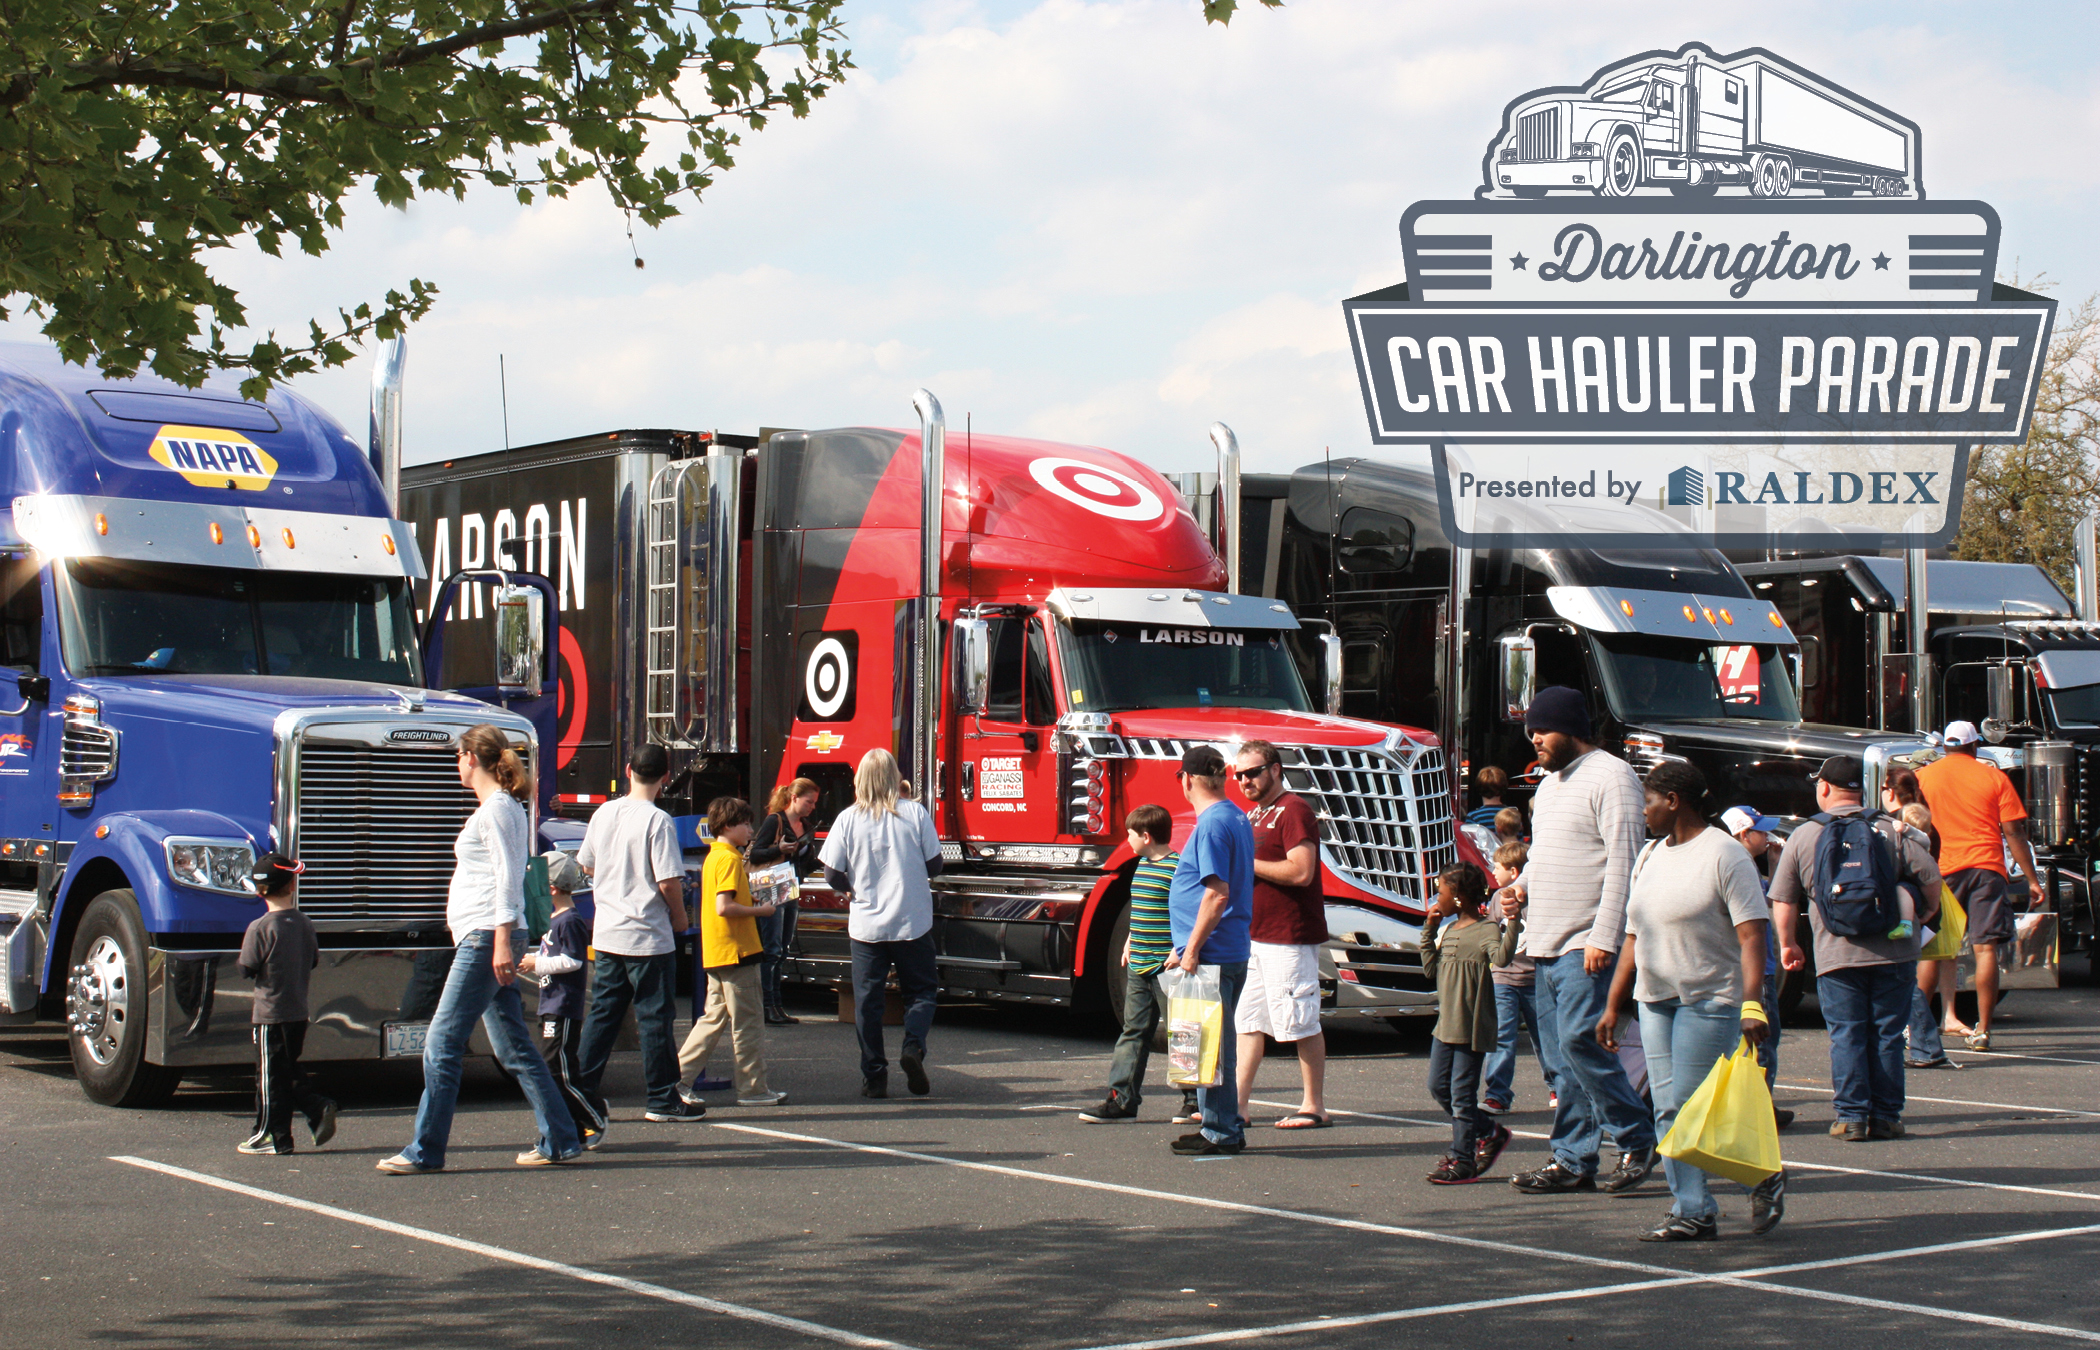 Darlington Car Hauler Parade and Festival Zooms Back August